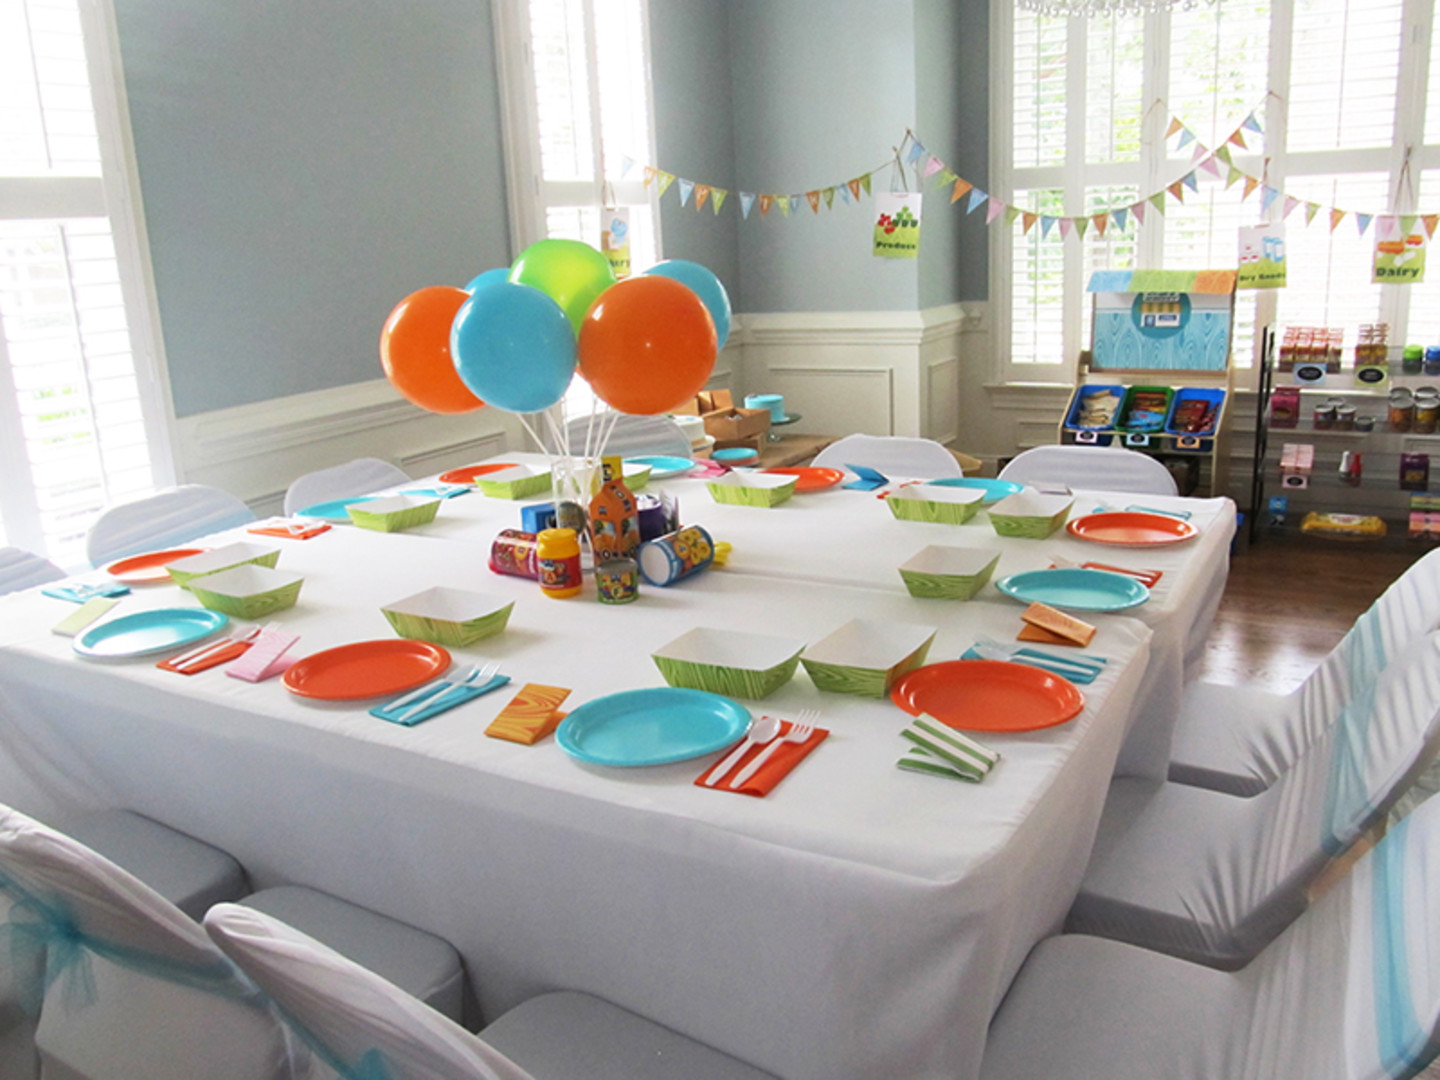 Looking for a unique theme for a First Birthday Party? This boy had an amazing Supermarket 1st Birthday Party and we have all the pictures, activities, decorations, cake, food and invitations! Click for more creative ideas! #FirstBirthday #partytheme #1stbirthday #partydecor #milestonebirthday